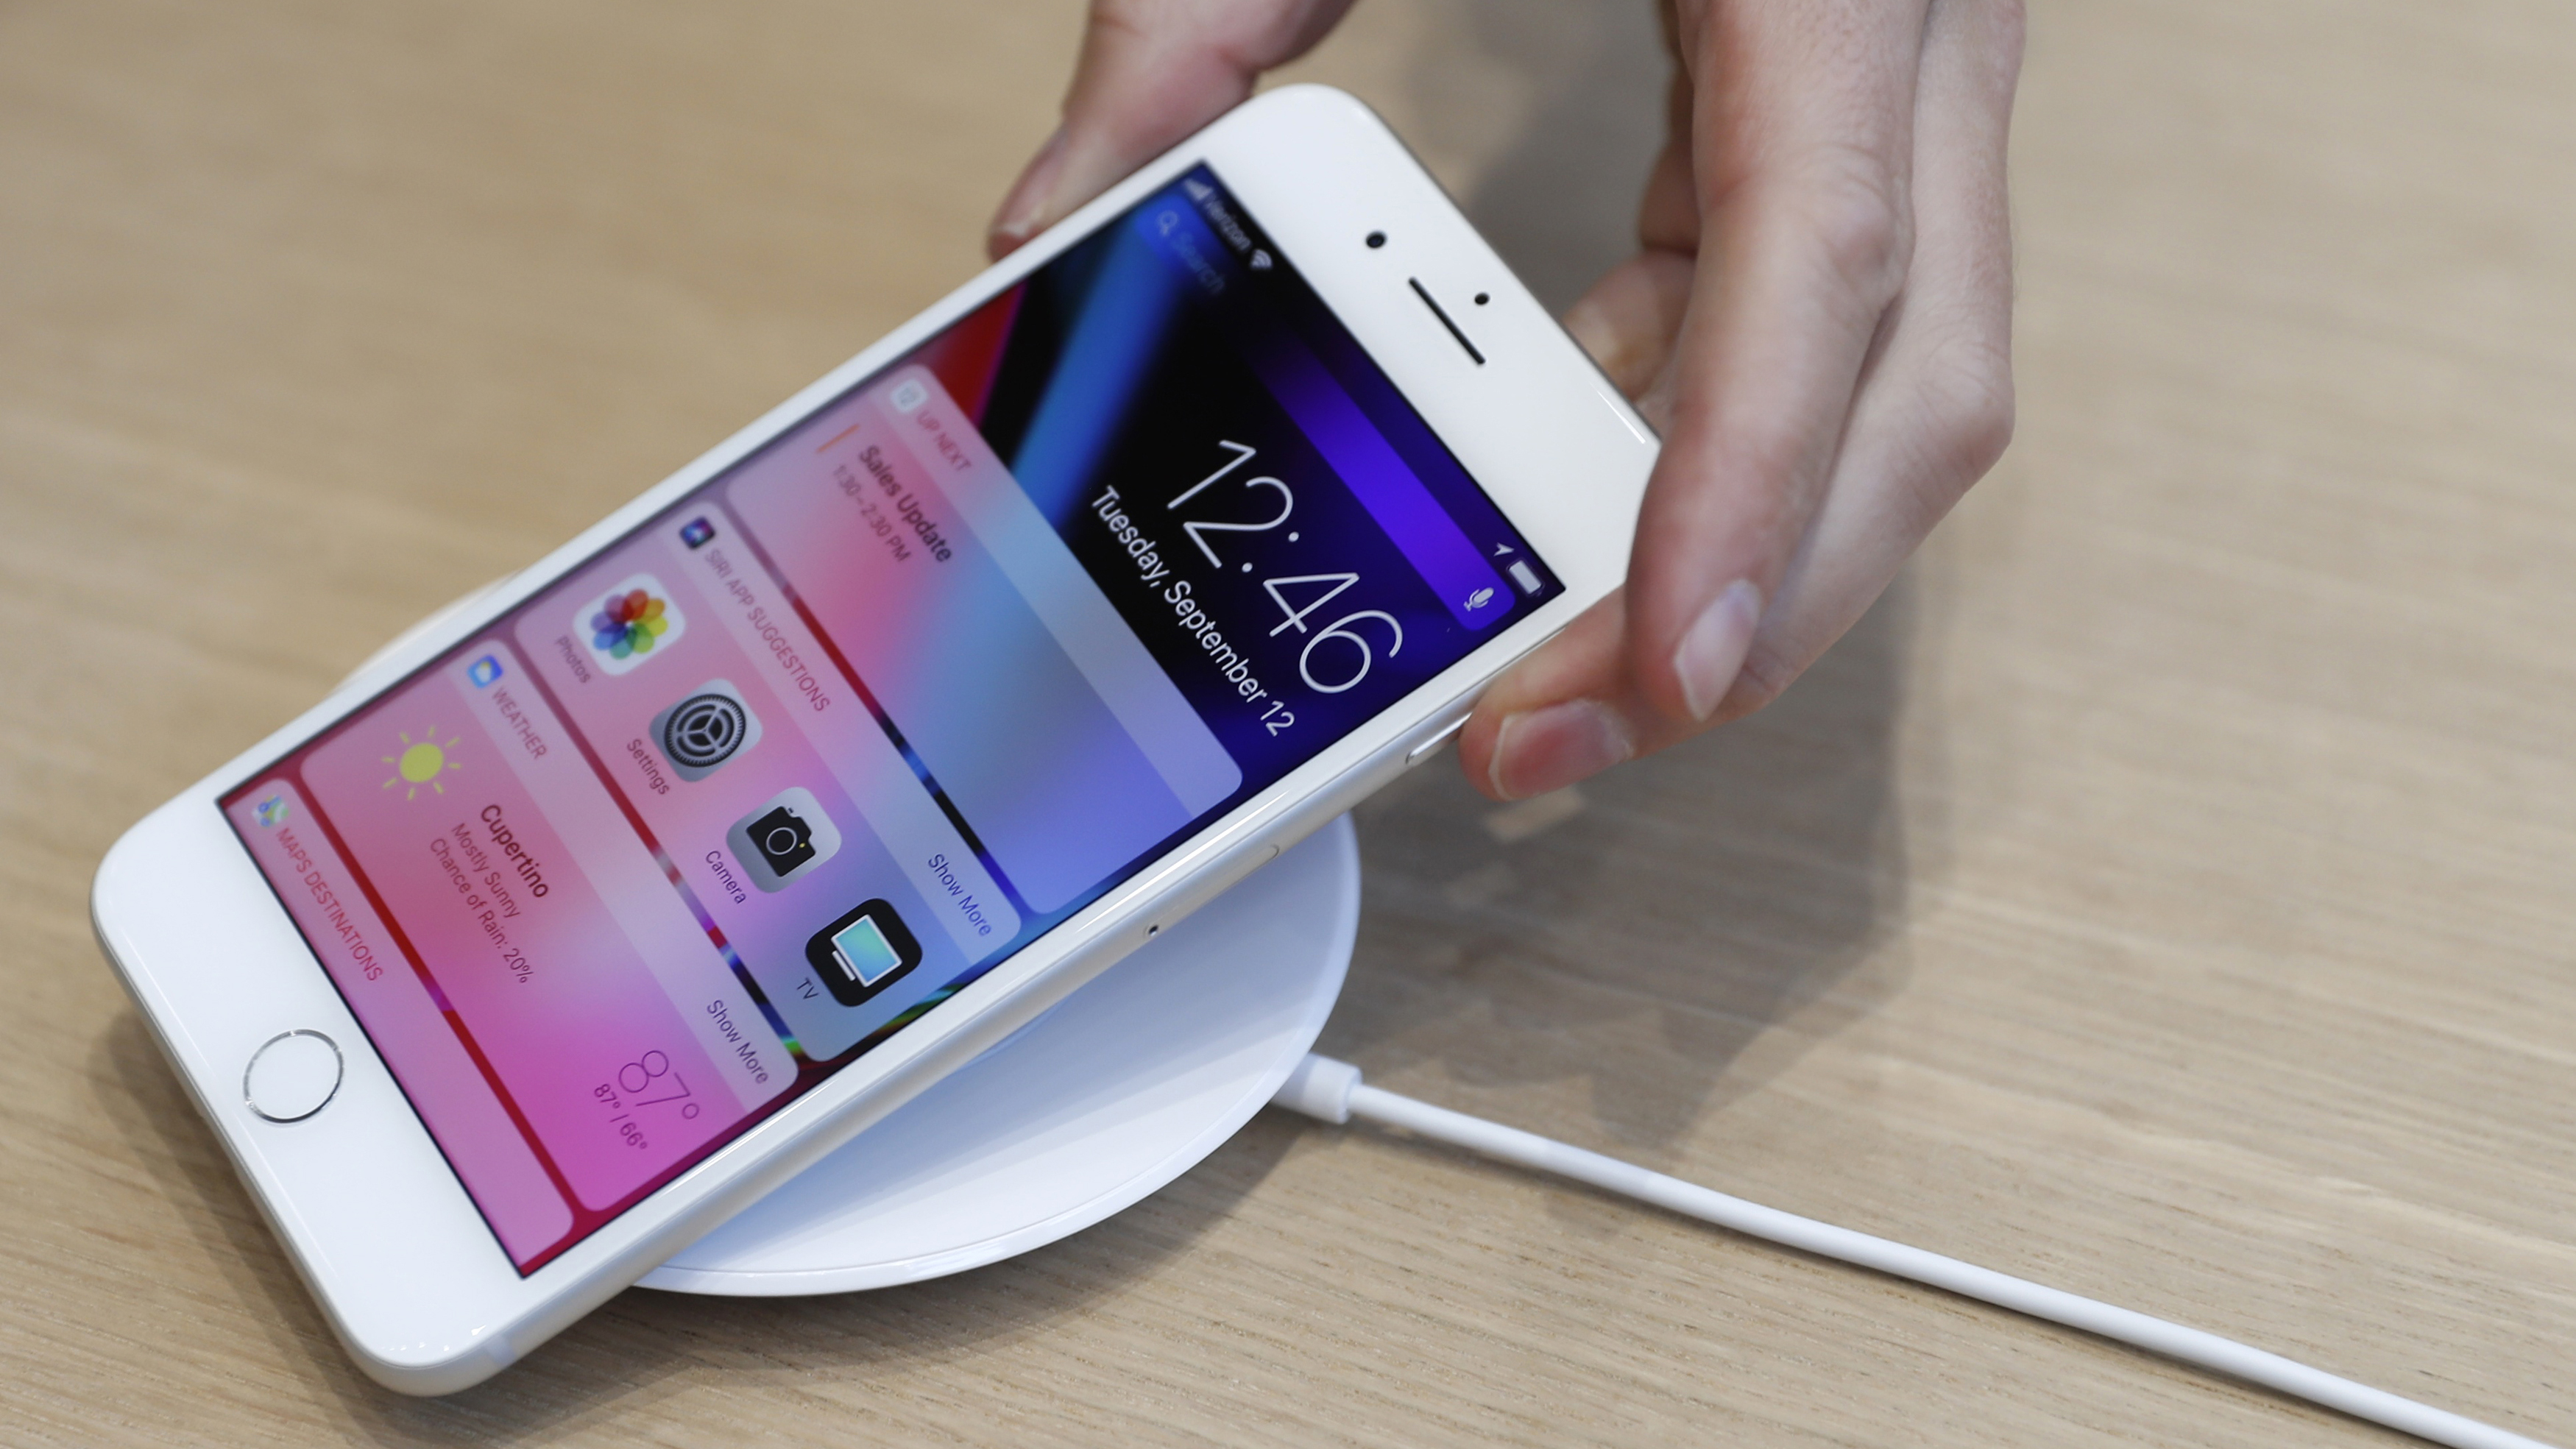 An AirPower wireless charger is displayed during a launch event in Cupertino